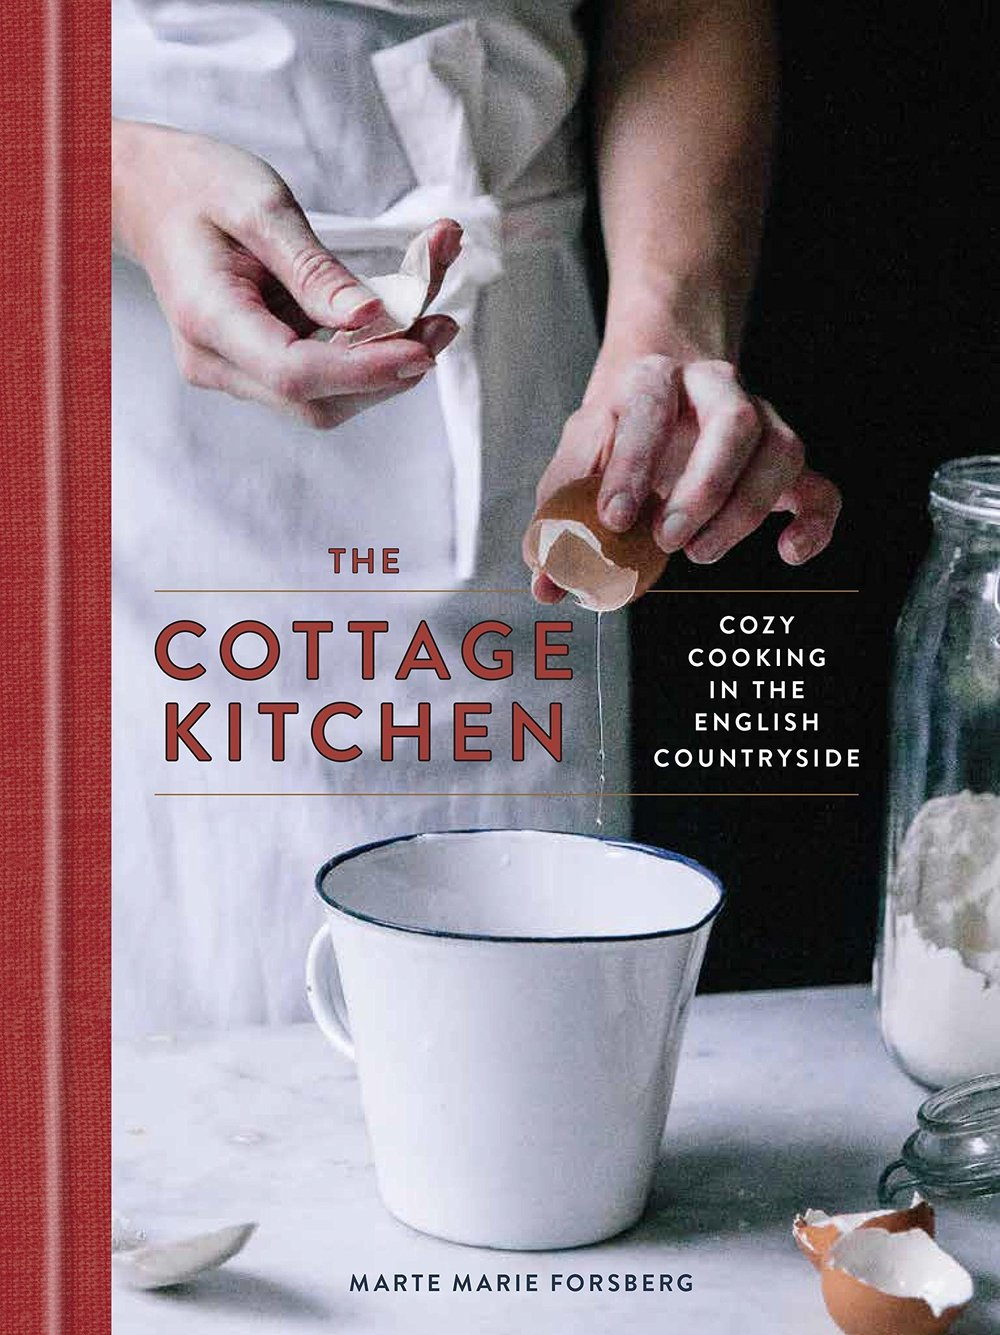 screw_the_average_city_guide_london_4_traditional_food_cookbook_cottage_kitchen.jpg